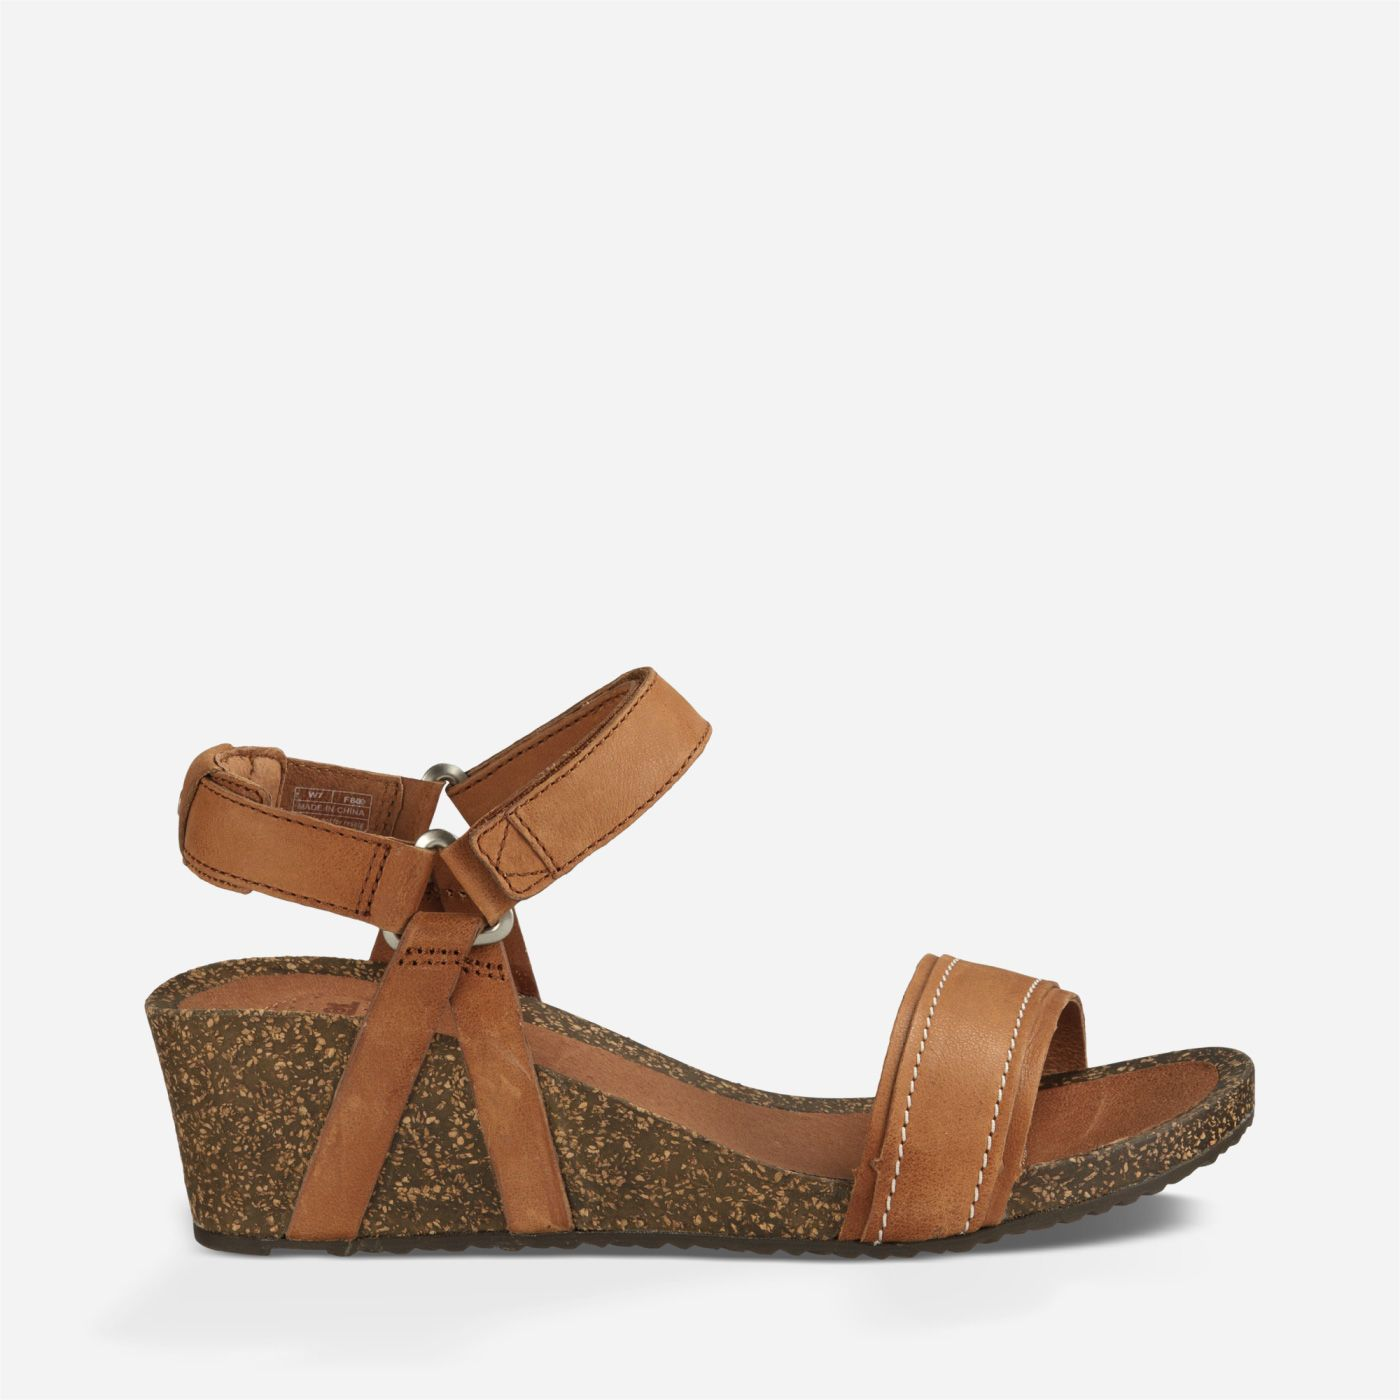 bbb84d9457cf Shop women s footwear on the official Teva® site for the Ysidro Stitch Wedge  Women s Sandals